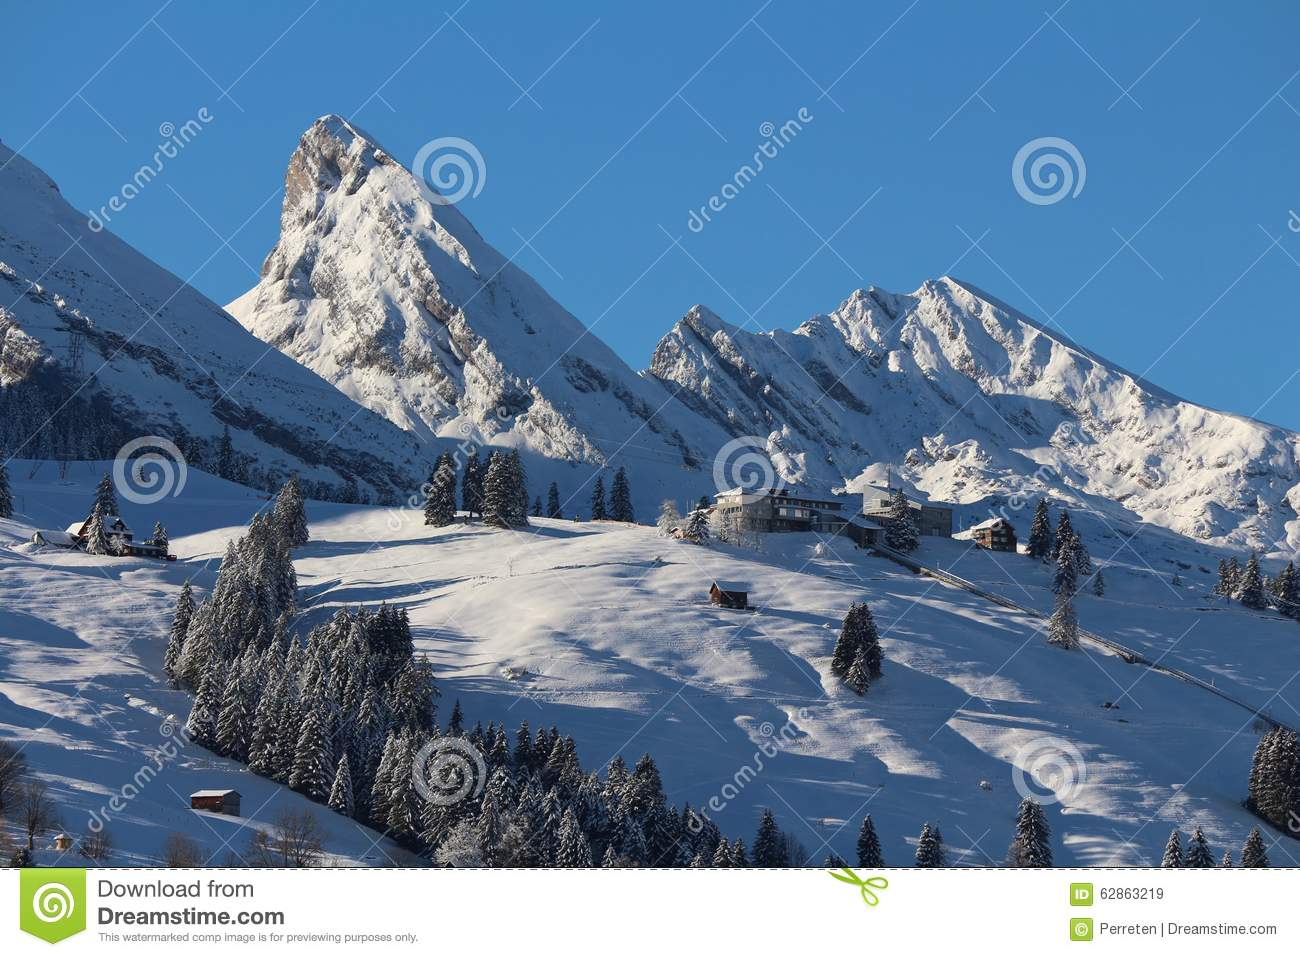 Mountain Peaks Of The Churfirsten In Winter And Ski Area Stock.